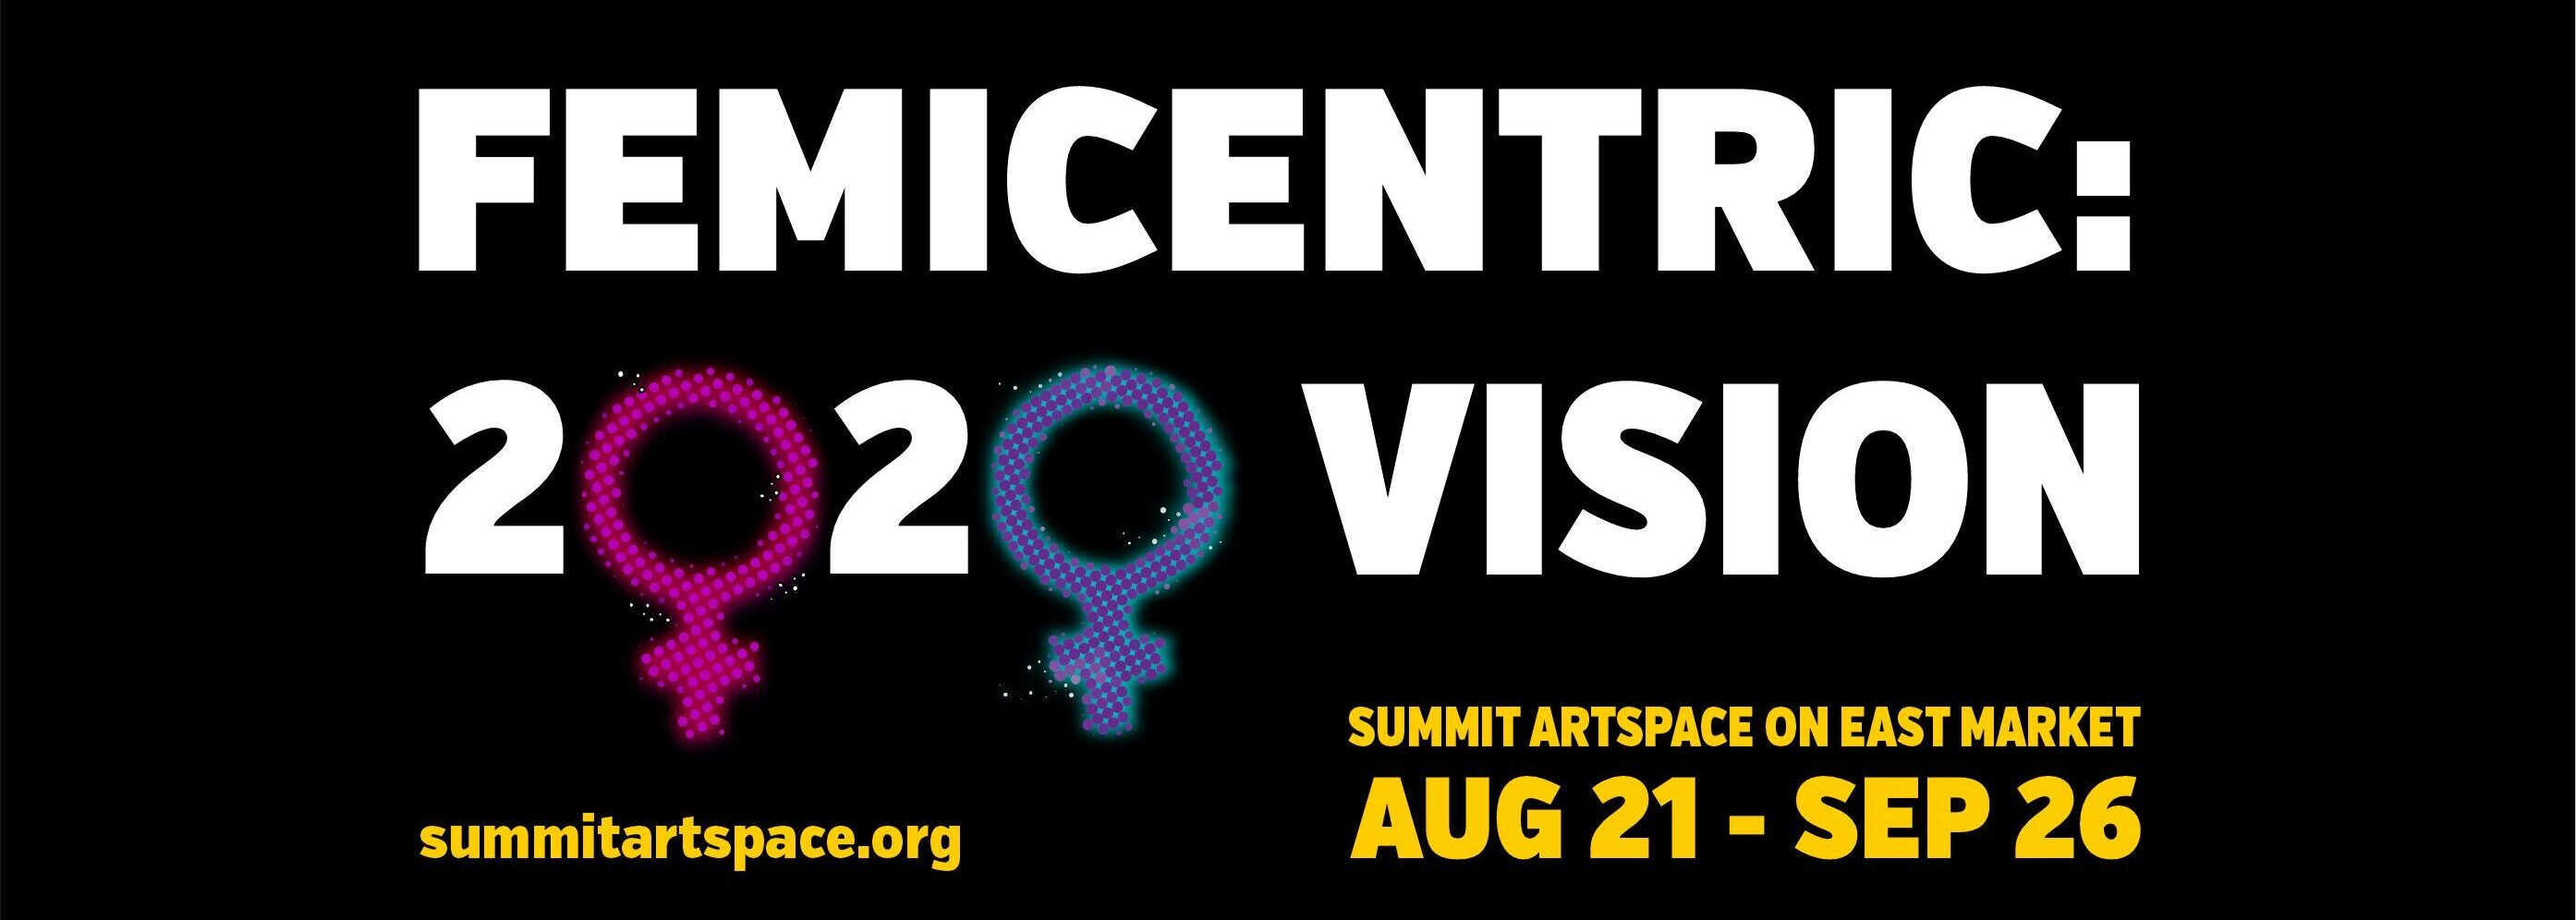 FEMICENTRIC: 2020 VISION Art Exhibit